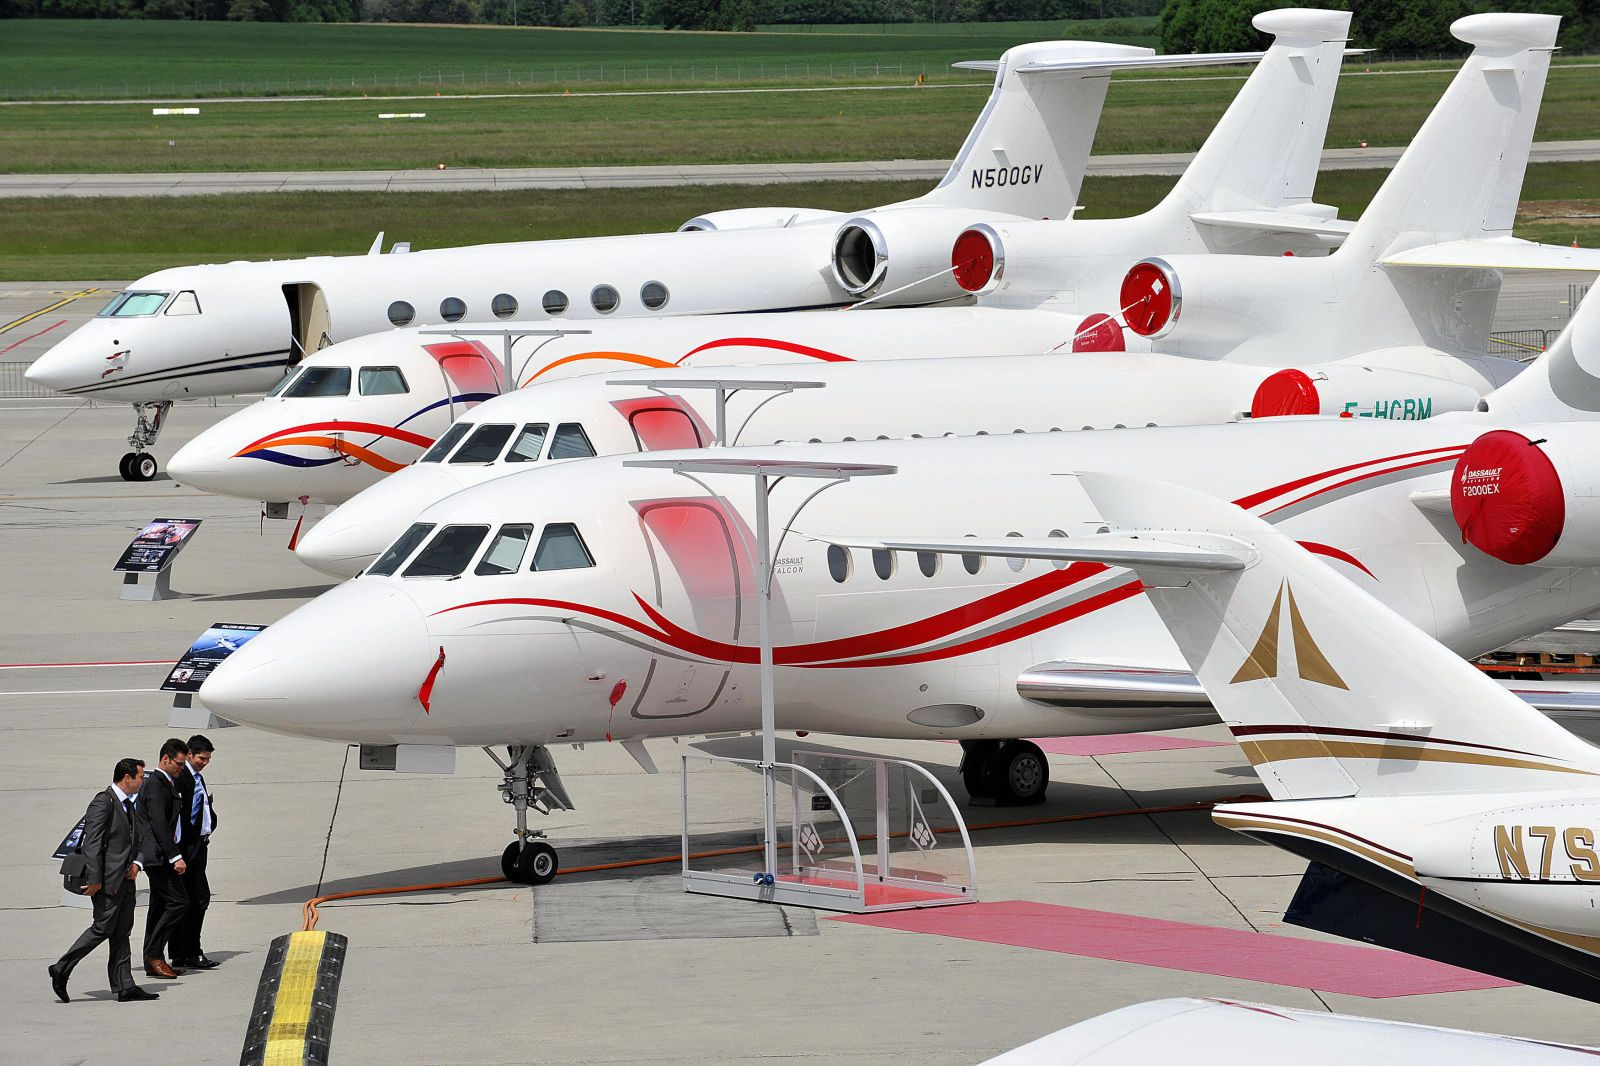 Private Jets Descend on Nantucket for Christmas Stroll  - TownandCountryMag.com